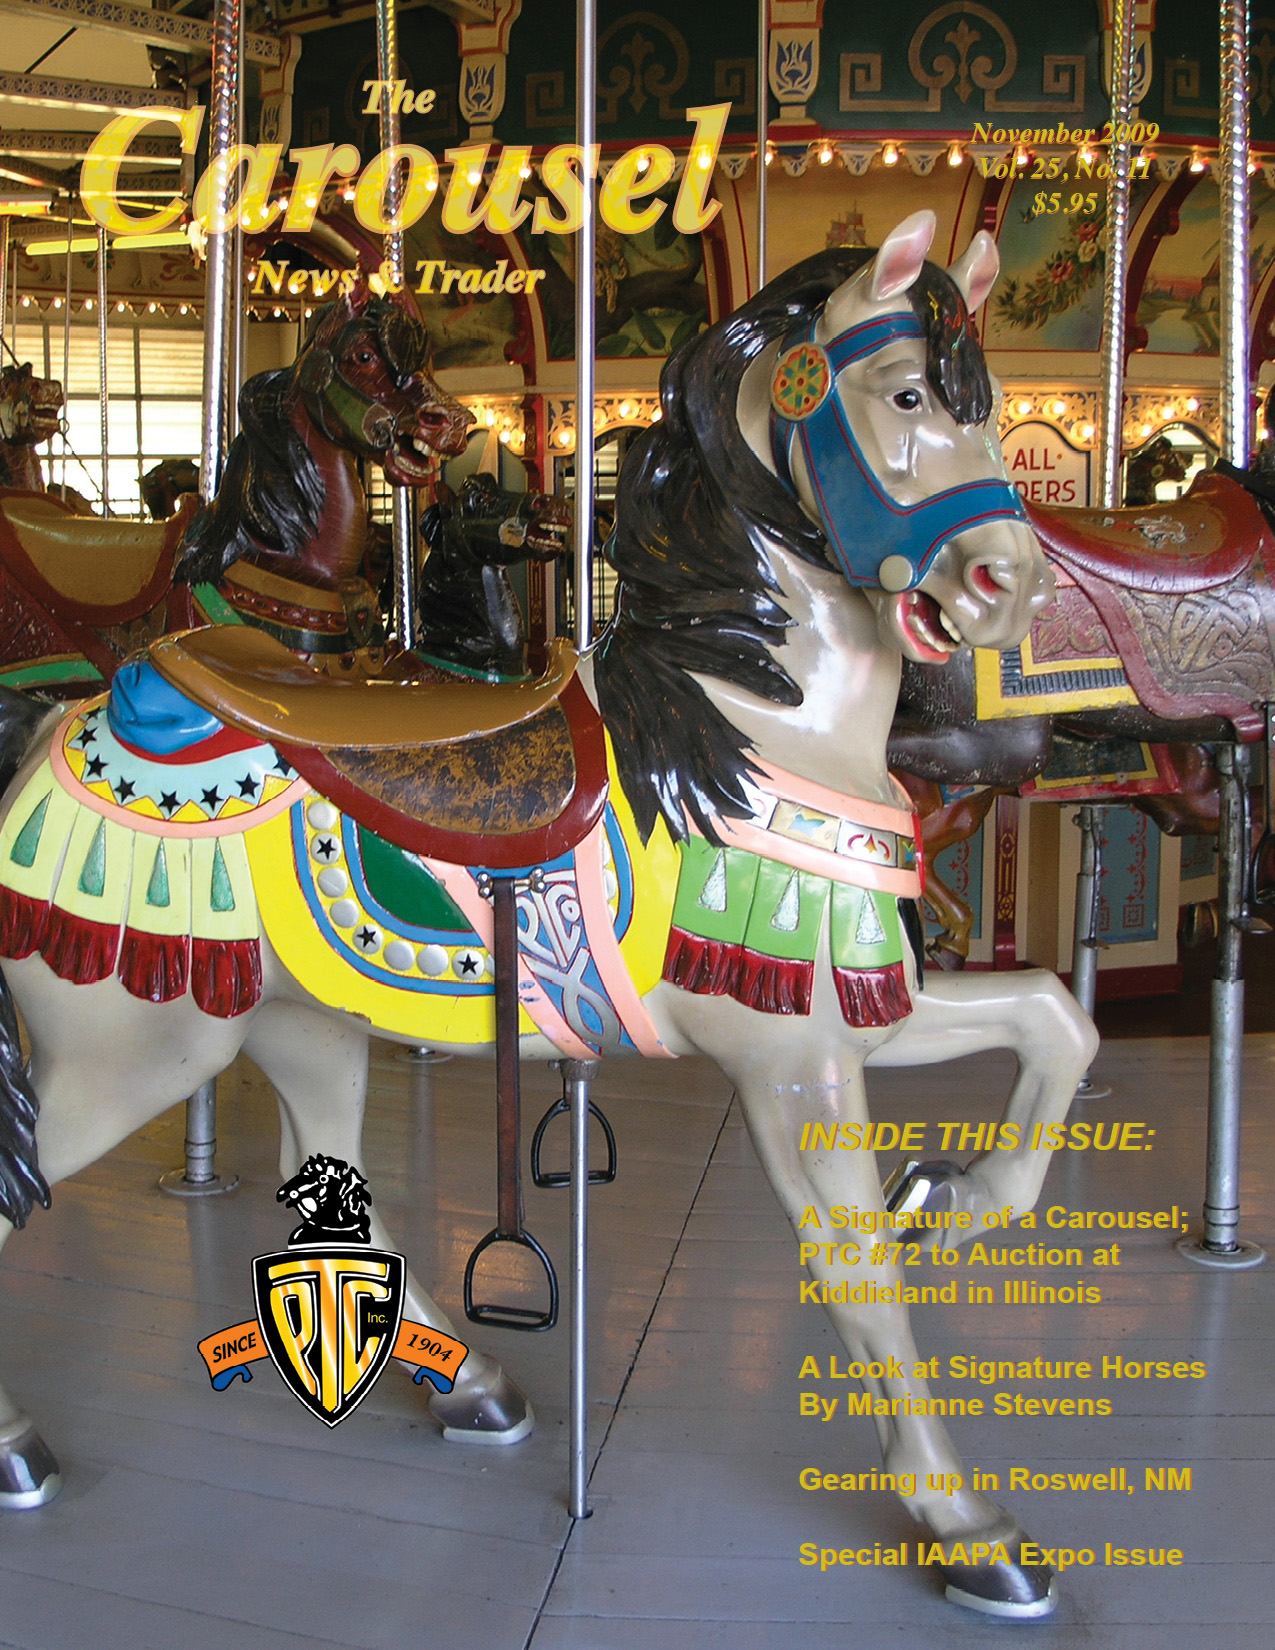 Carousel-news-cover-11-PTC-72-Kiddieland-IL-carousel-November-2009